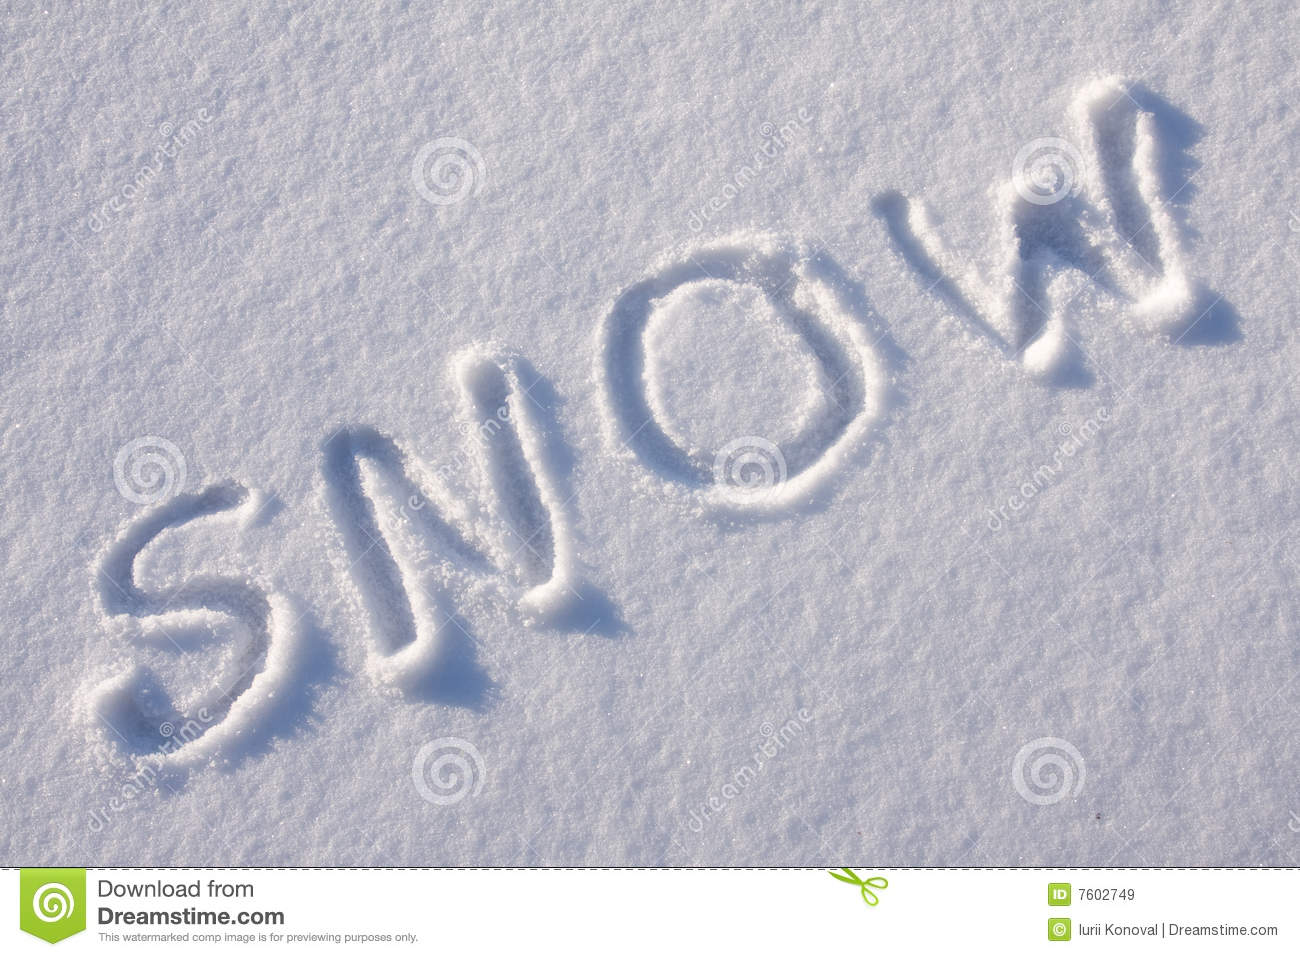 New 3d Animation Wallpaper Writing Text On The Snow Royalty Free Stock Images Image